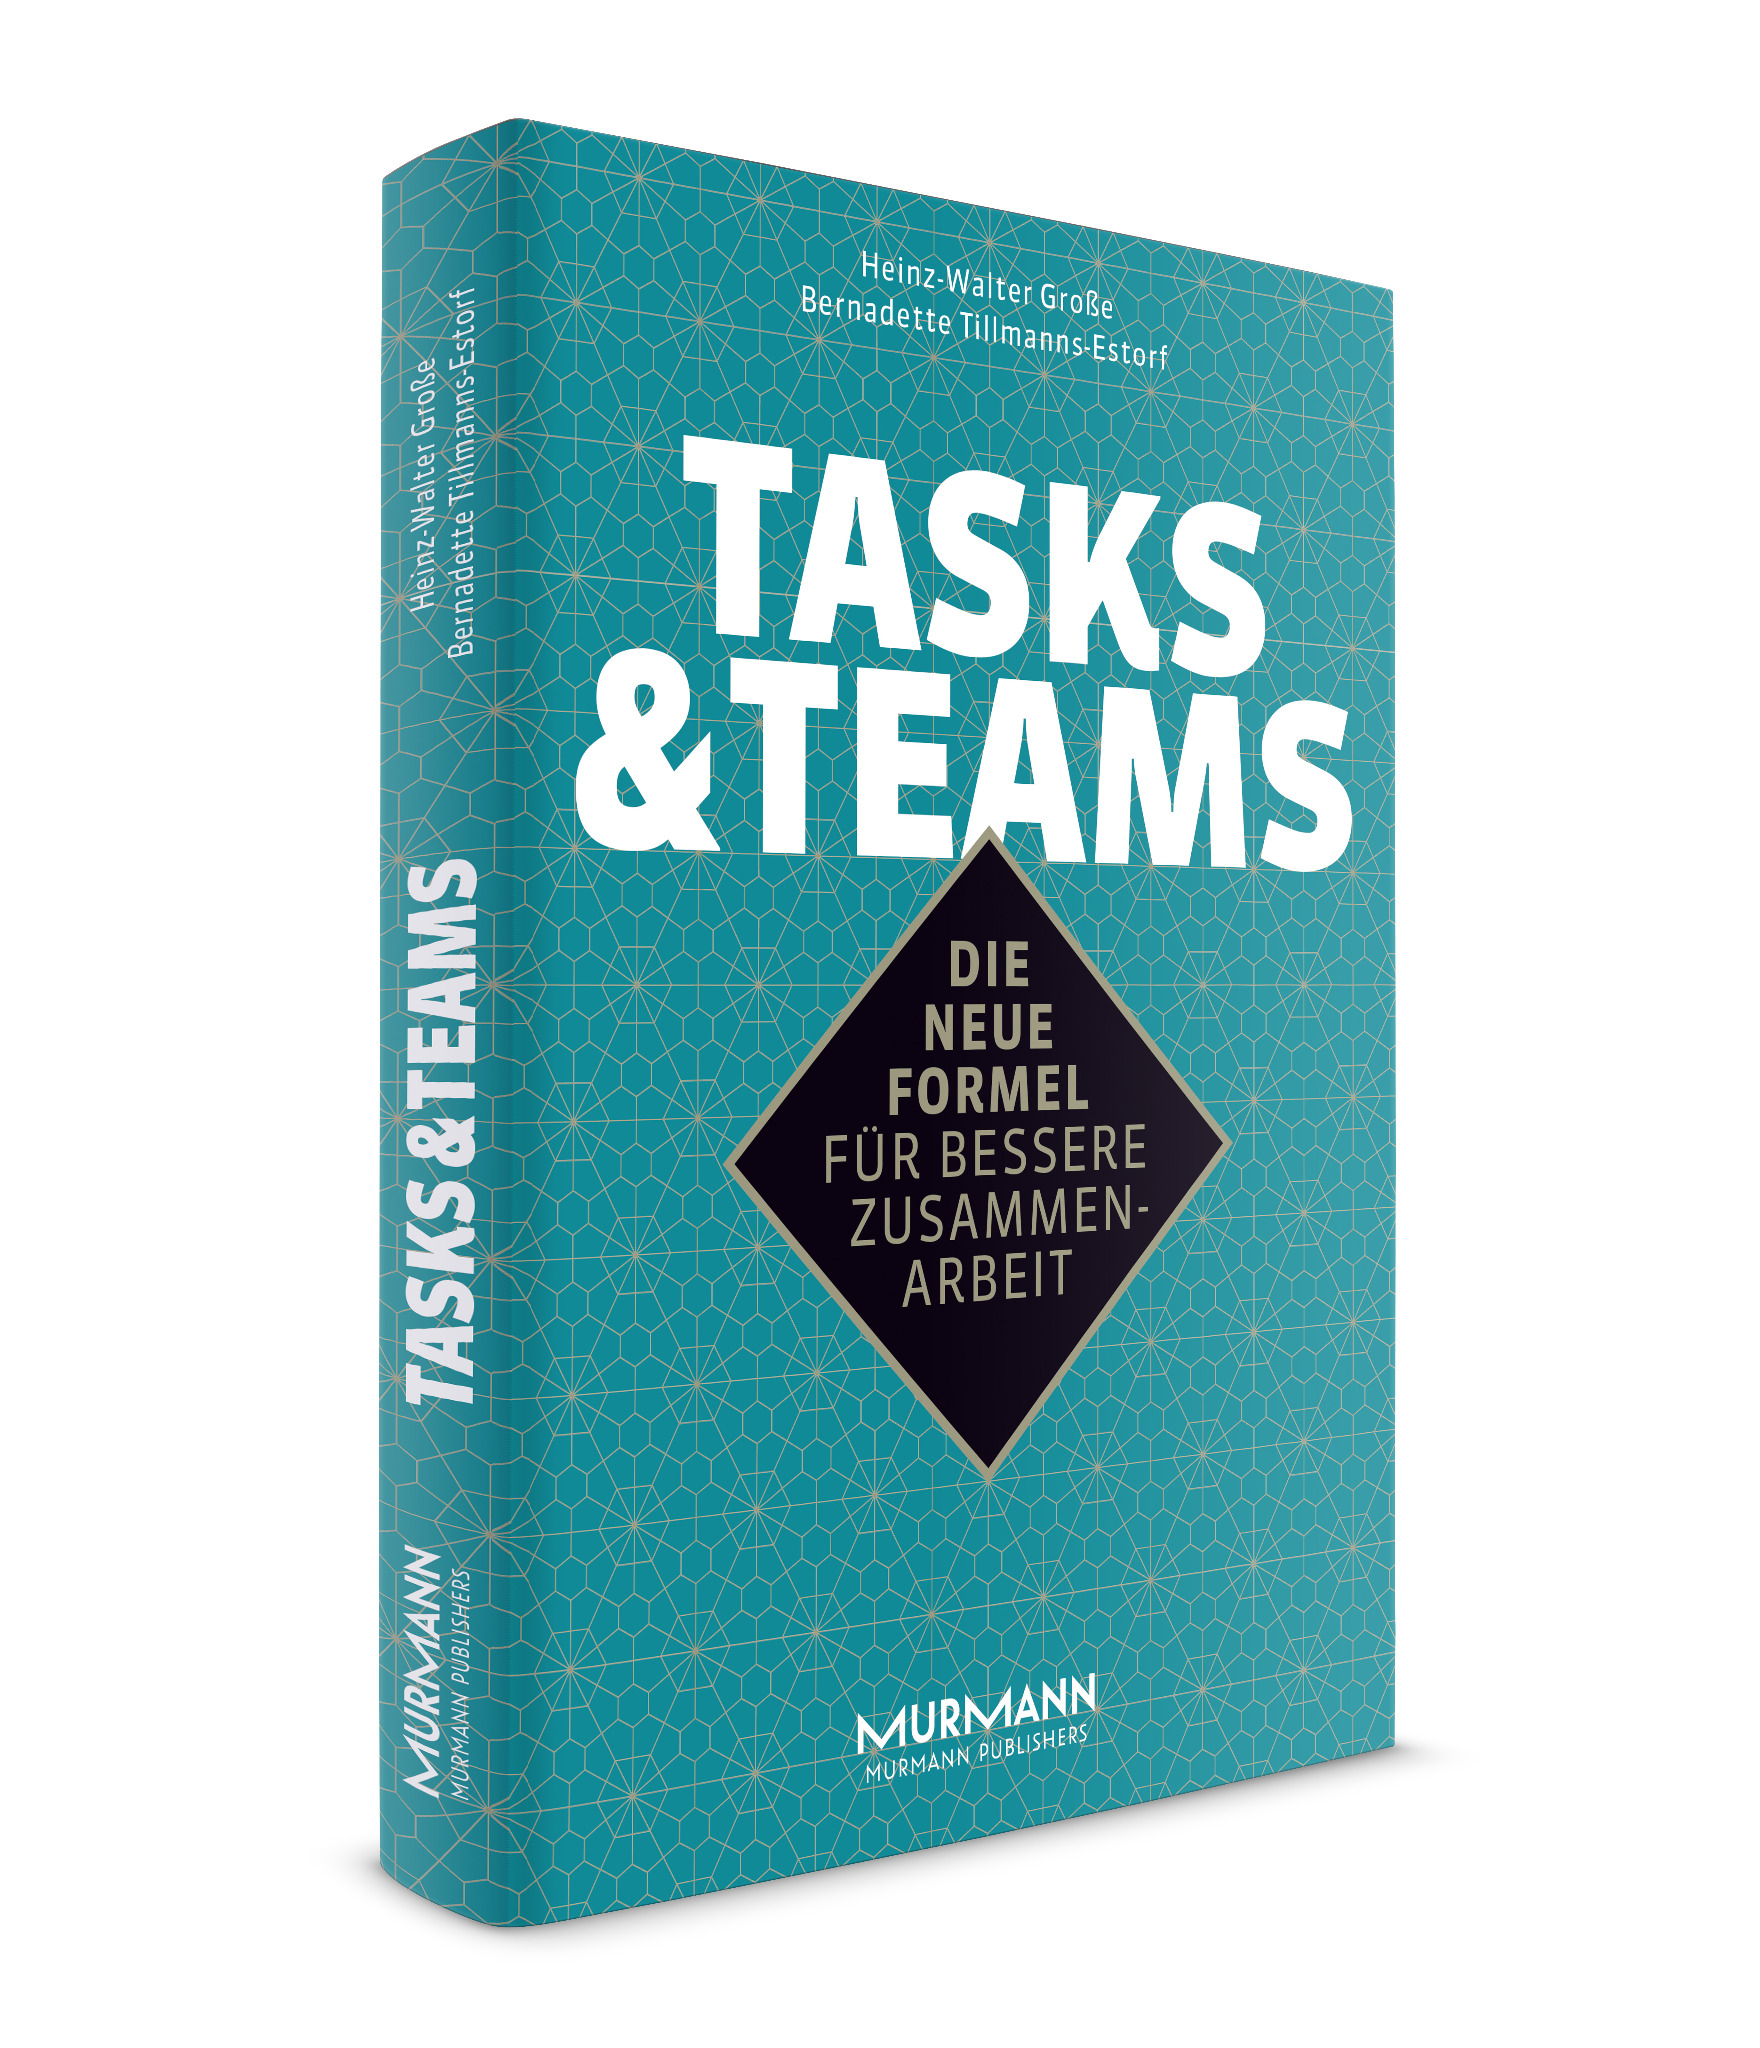 Tasks & Teams / H.-W. Große & B. Tillmanns-Estorf (E-Book)